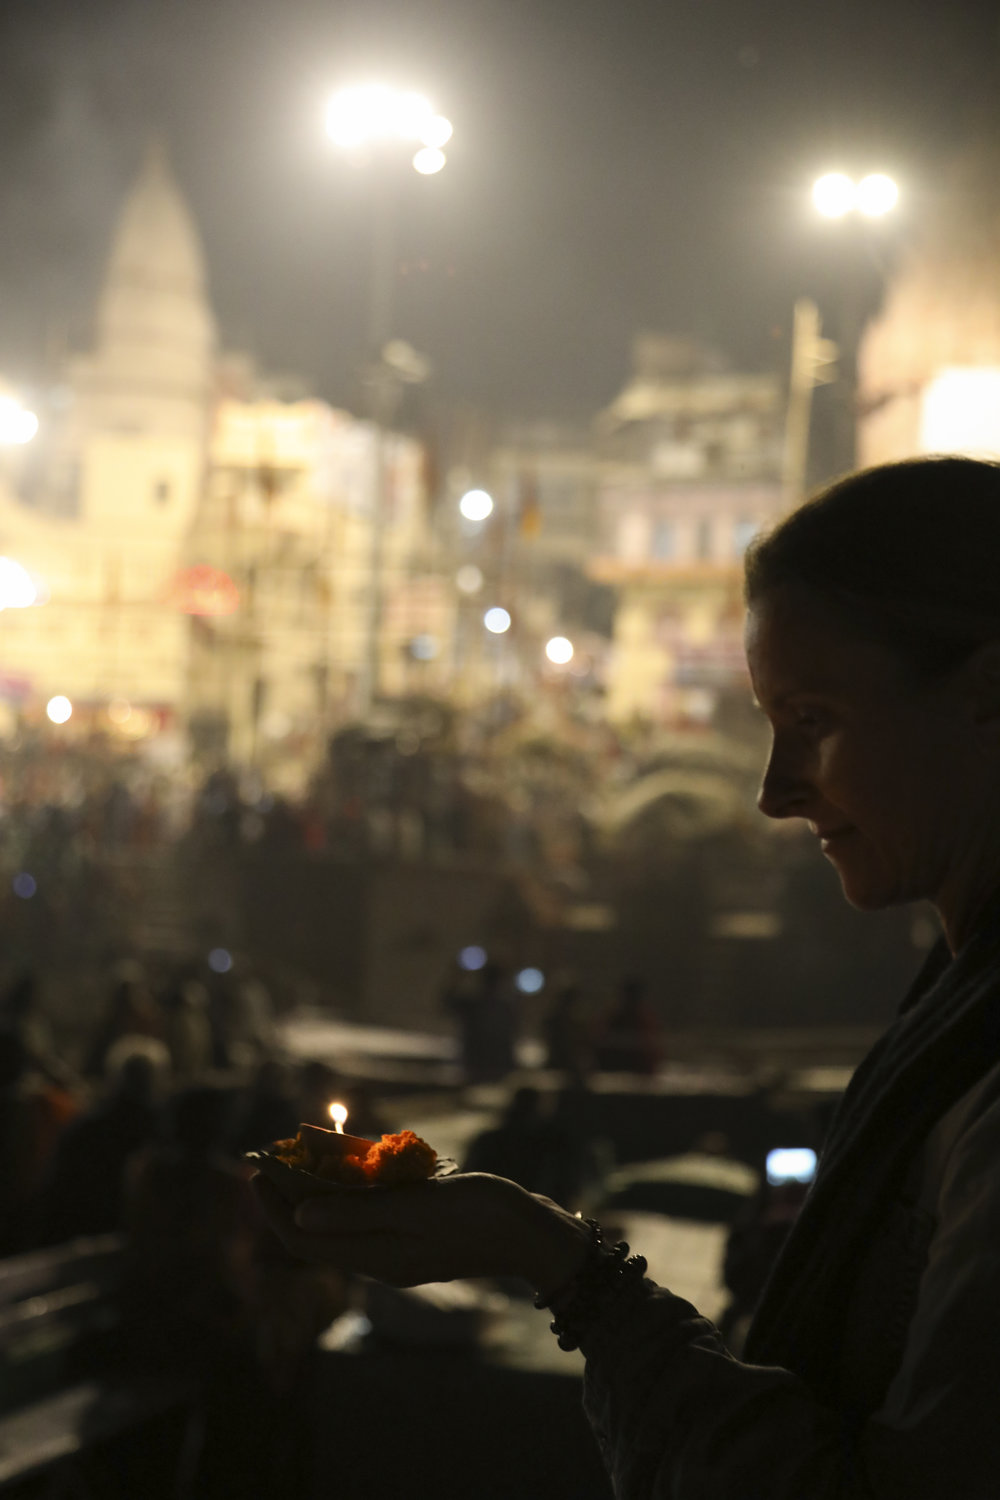 Julie Cimpko -   I was full of CURIOSITY the moment I landed in Varanasi, India's holiest city. The sites, smells, colors, rituals are truly like no other place in the world…certainly not for the faint-hearted. Michelle took this photo of me as I was stepping down from the boat to give an offering to the Ganges amidst hundreds of people and the puja fire ceremony behind me. It felt as if I were transported to another time.